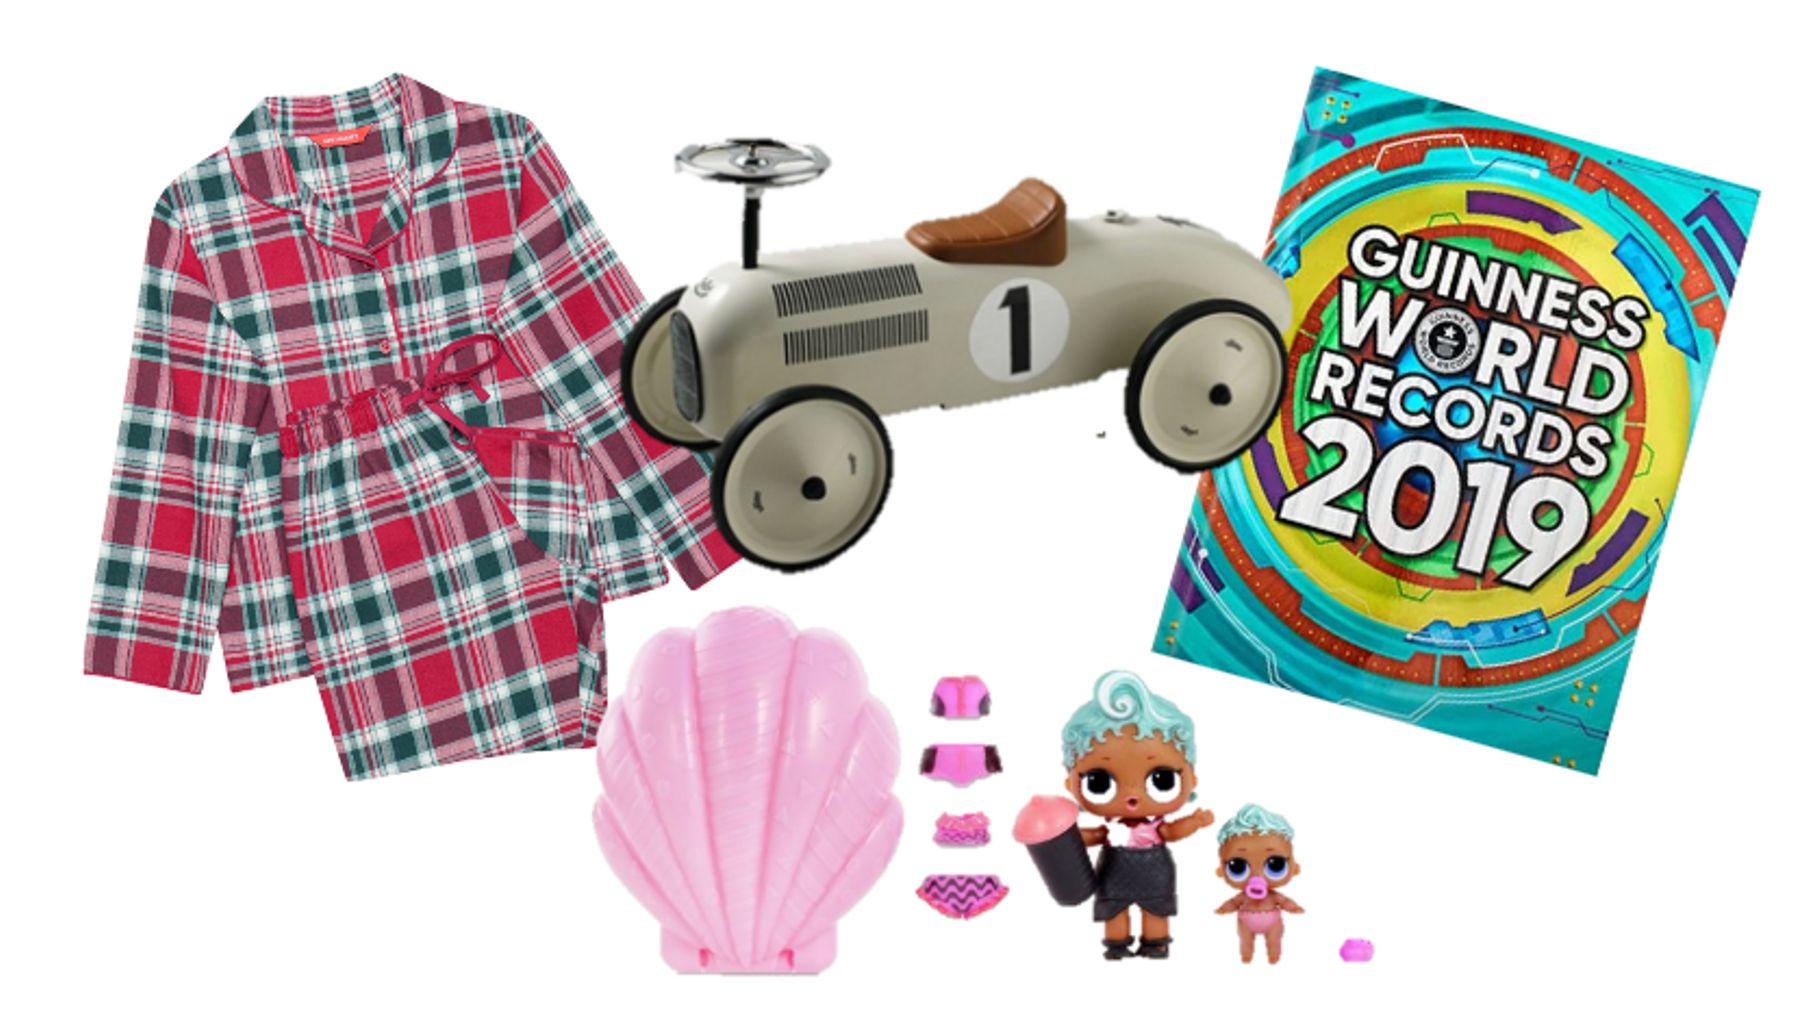 Great Christmas Presents For Kids.Best Christmas Presents For Kids Closer